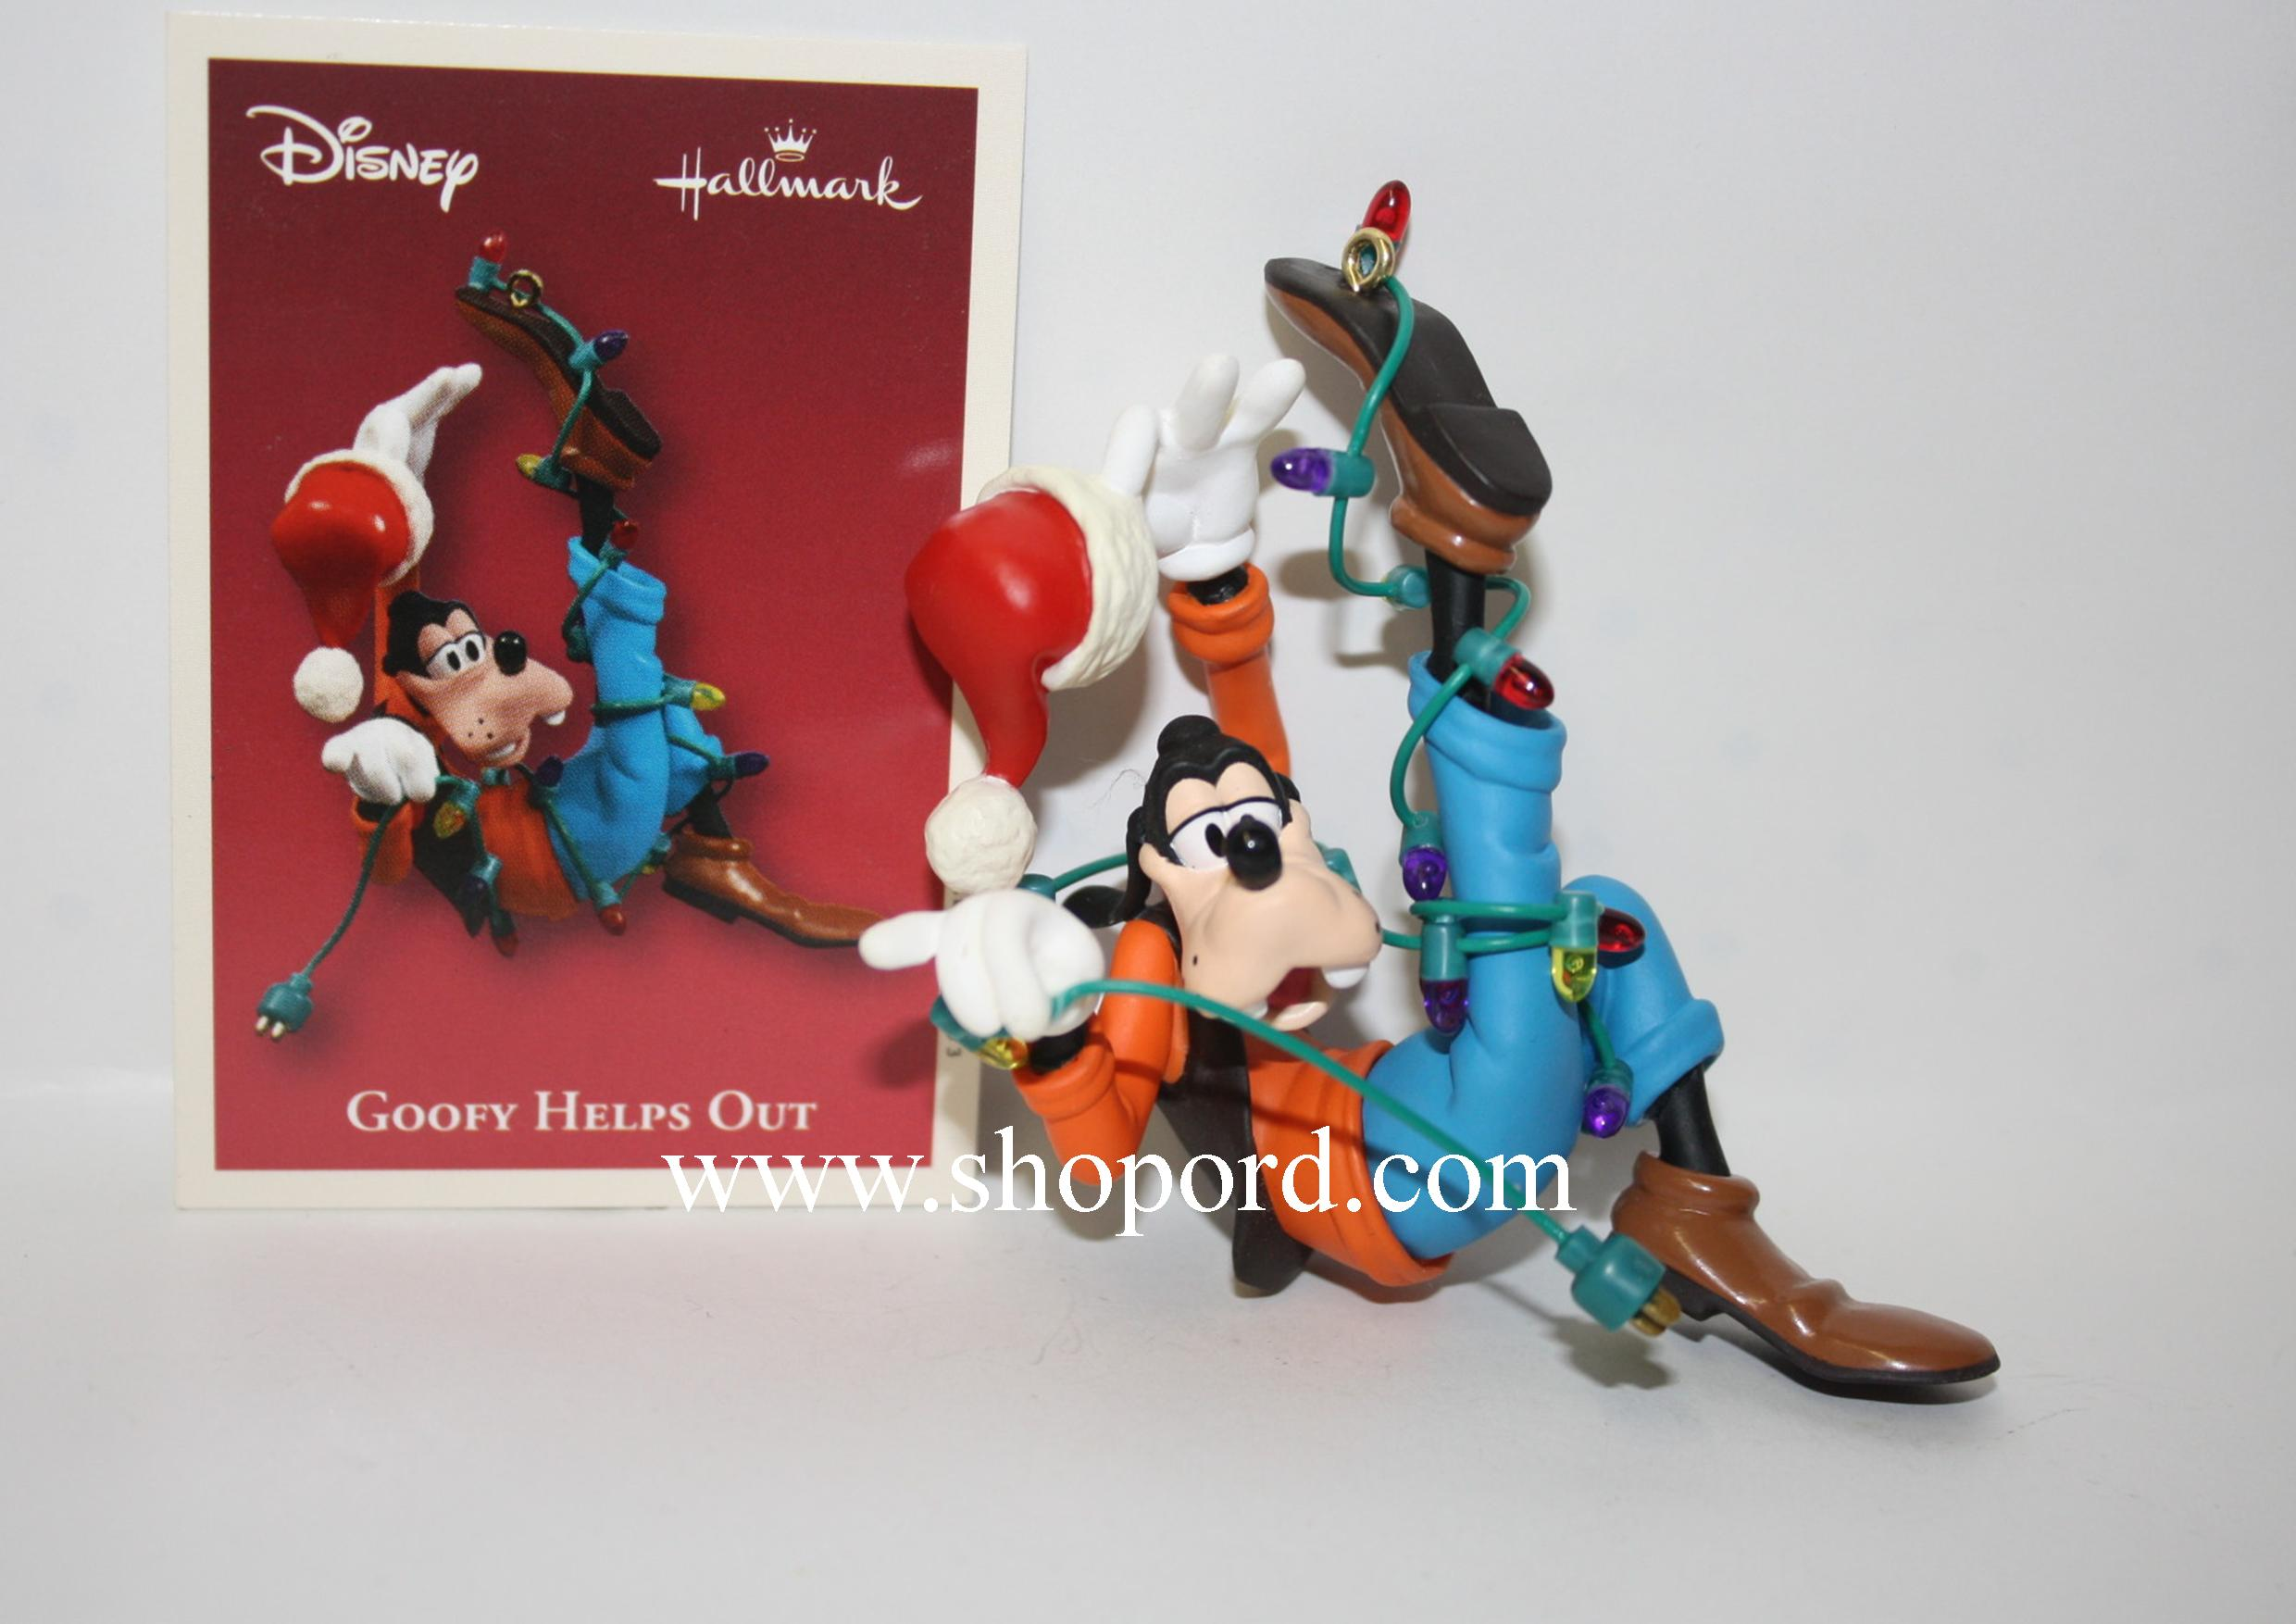 Hallmark 2003 Goofy Helps Out Disney Ornament QXD5037 Box Slightly Bent